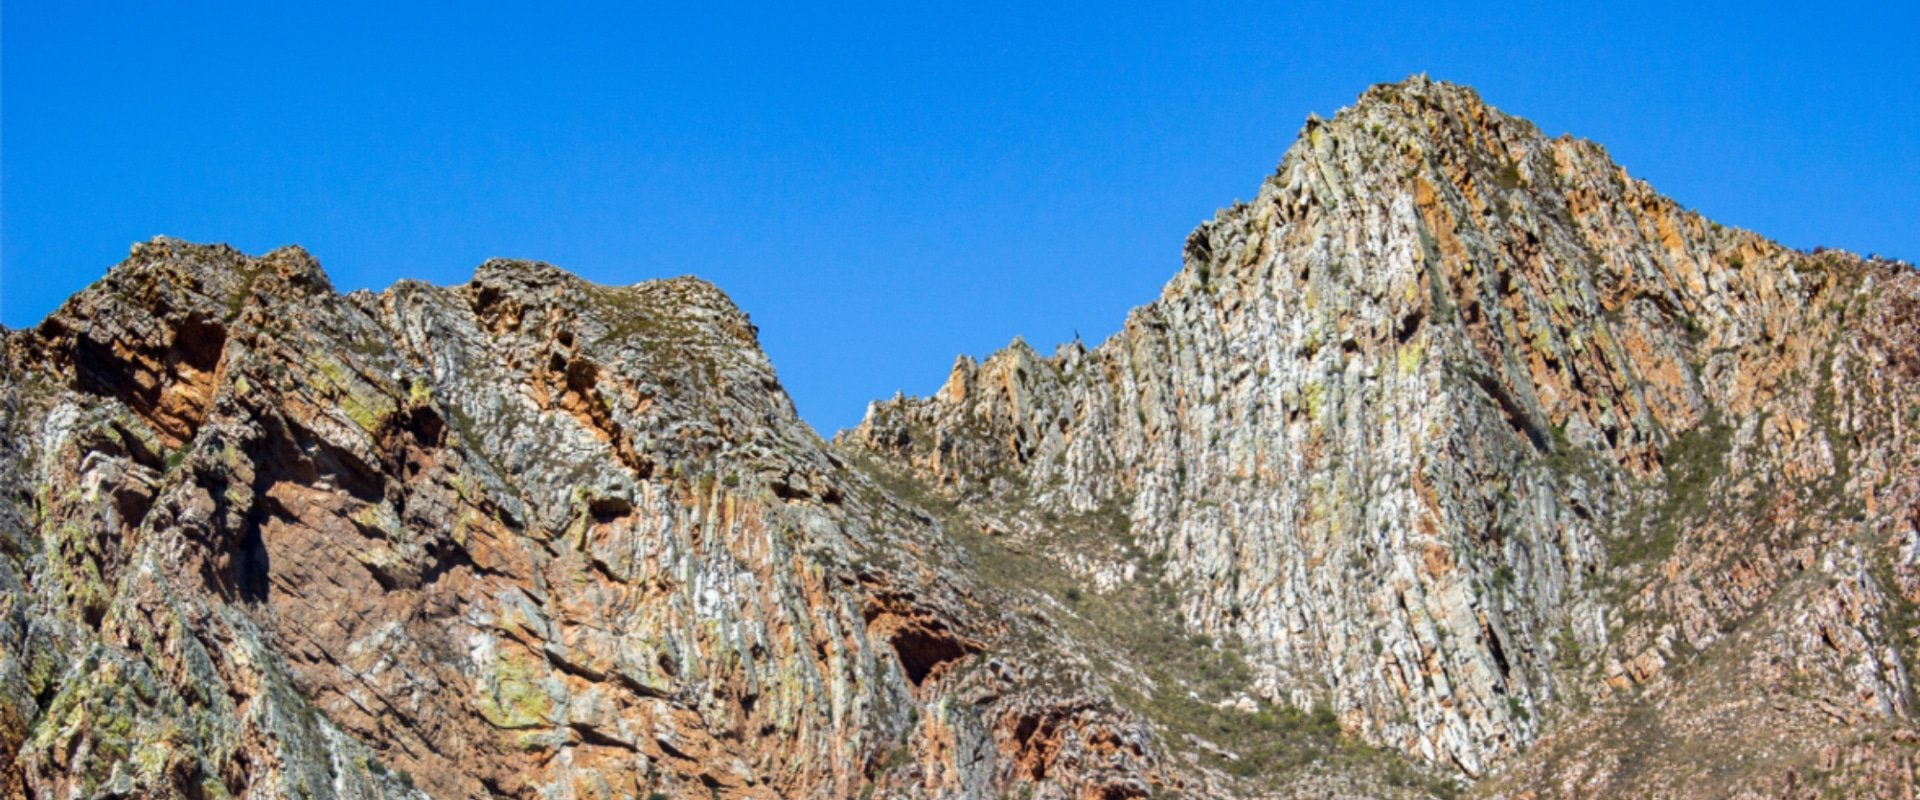 Engage in the art of rock climbing up Montagu's rock walls